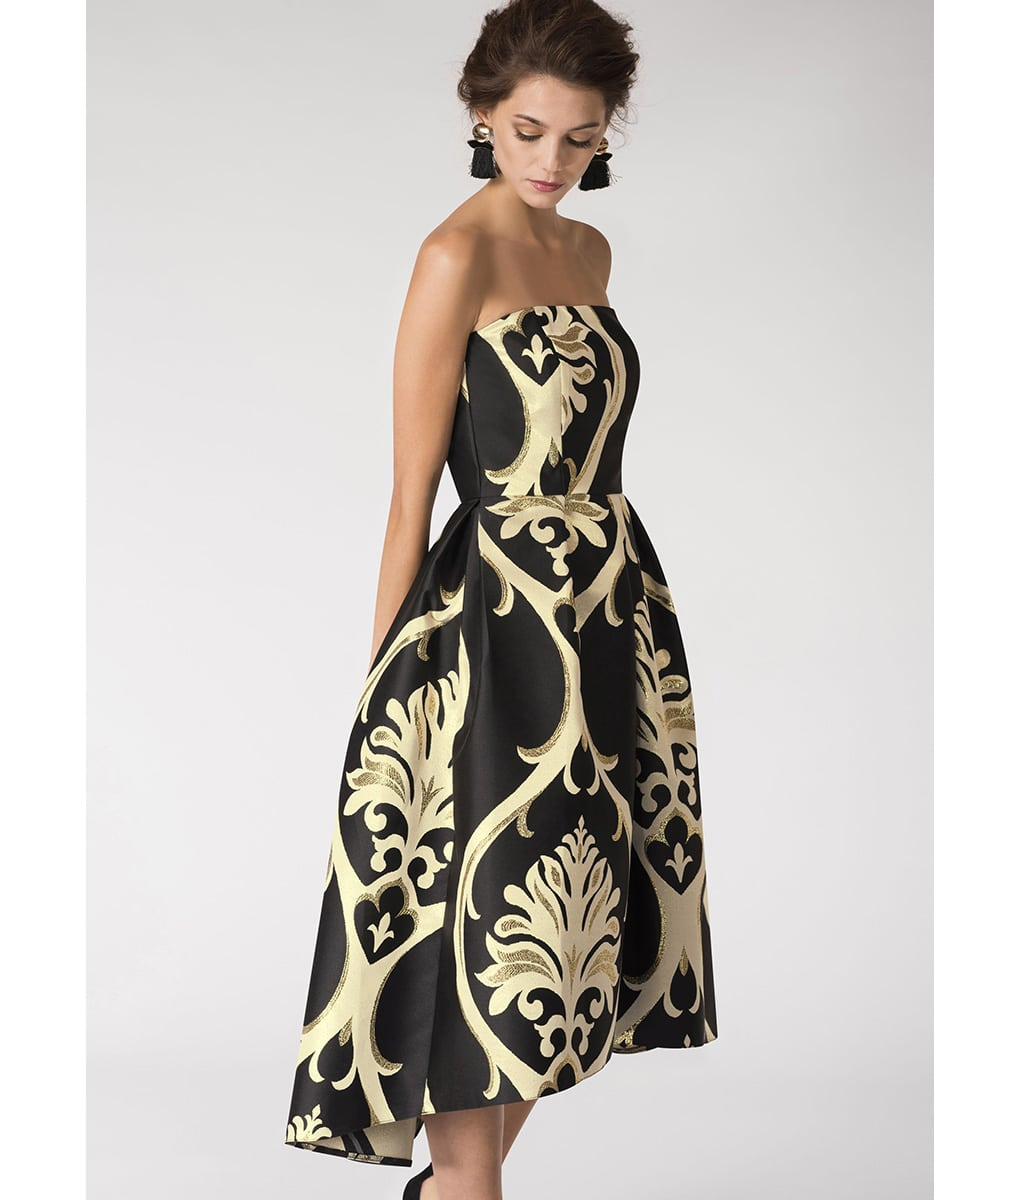 Closet London Black & Gold Strapless Midi | Alila Boutique